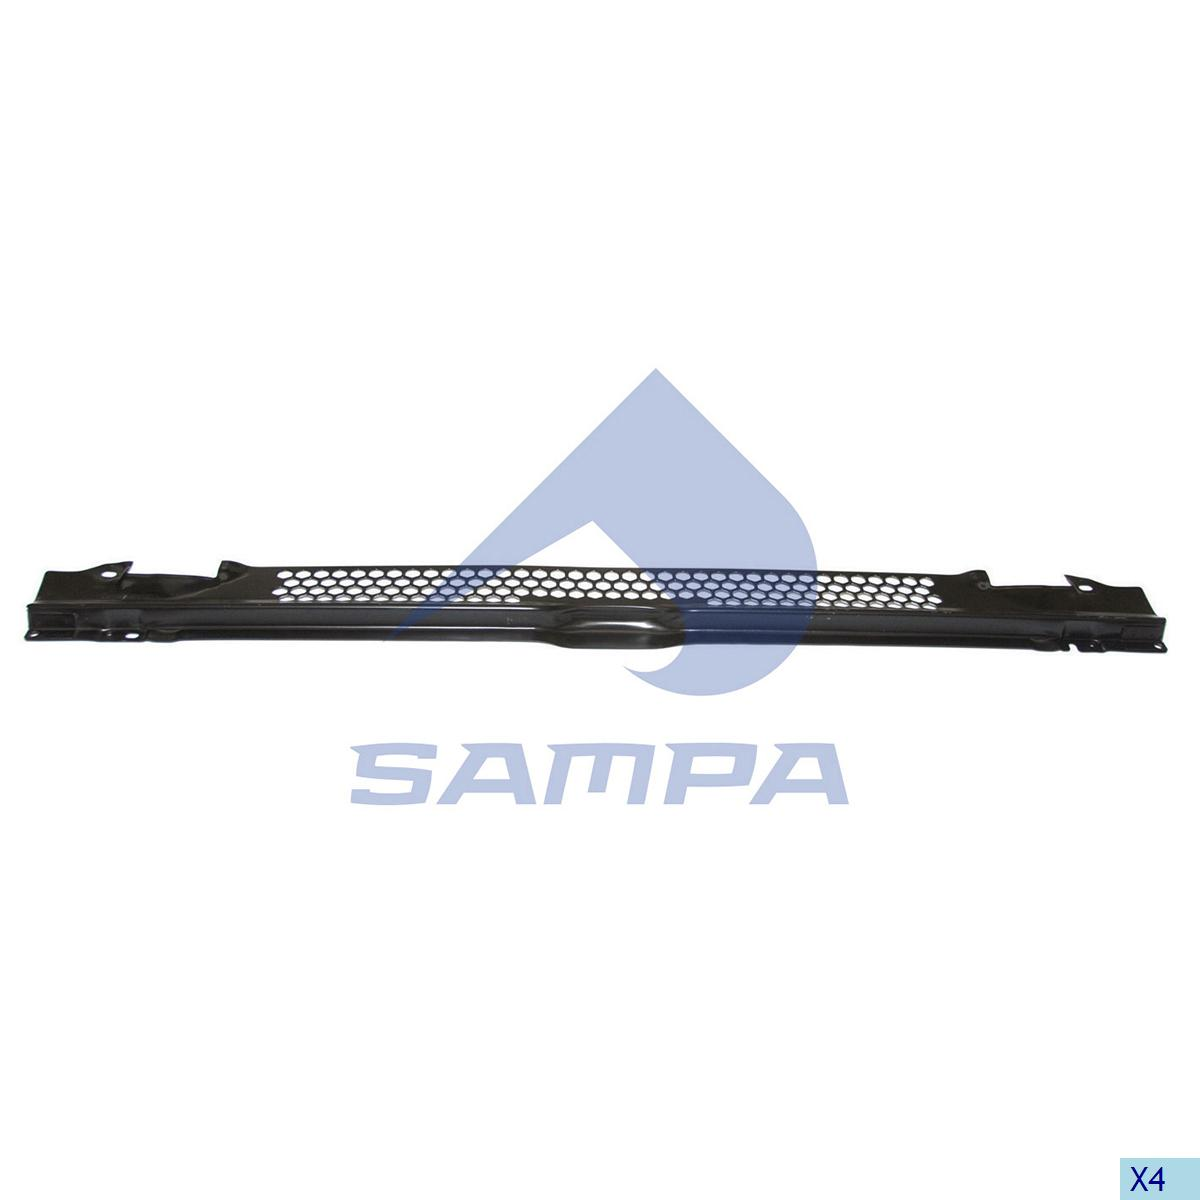 Grille, Front Panel, Scania, Cab